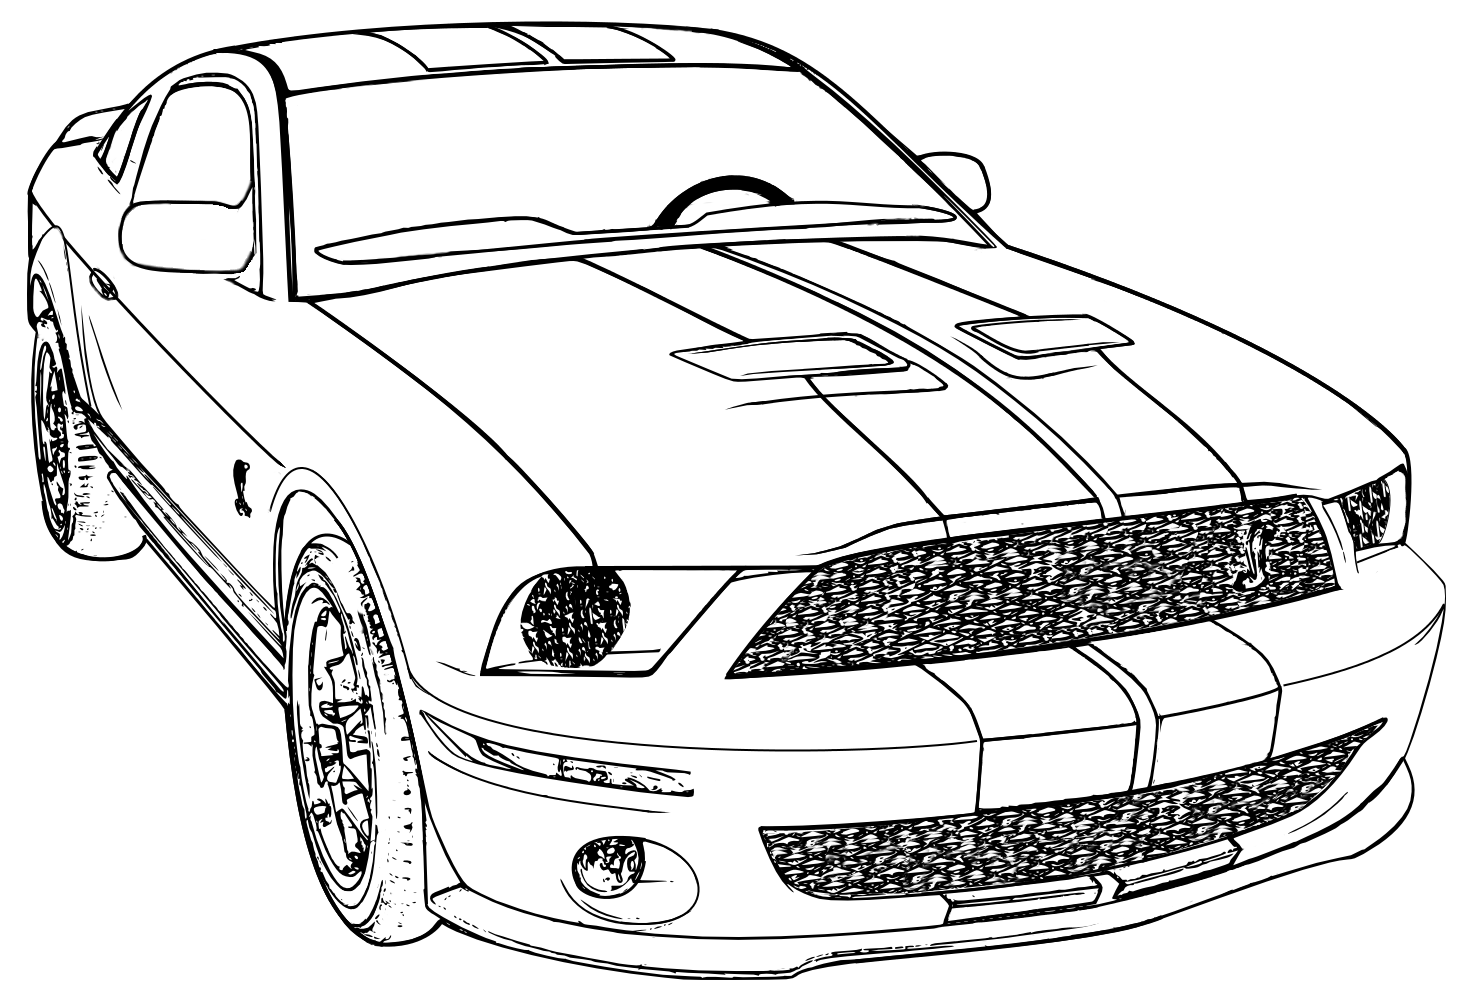 Cars Auto Ausmalbilder : Printable Mustang Car Car Coloring Page Ford Mustang Drawings